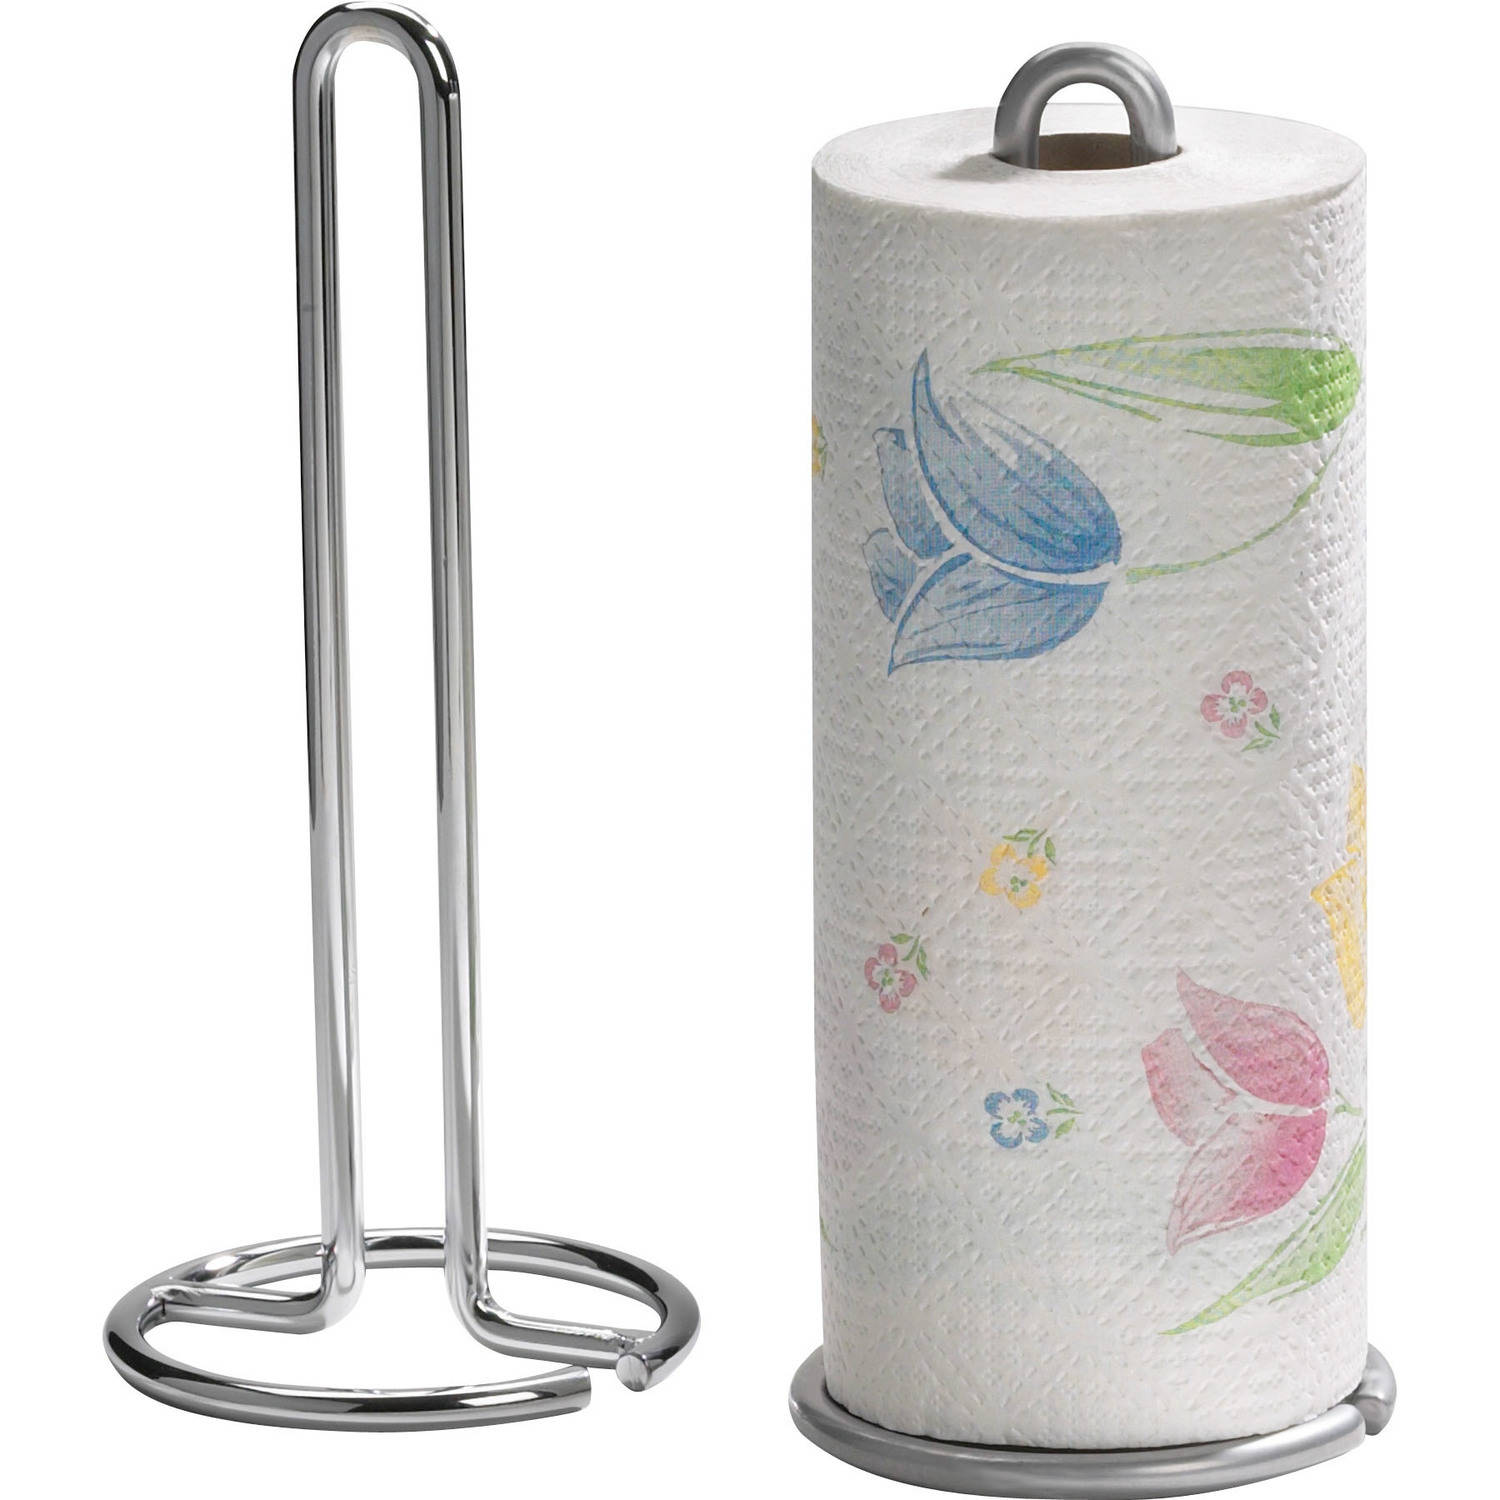 Spectrum Euro Paper Towel Holder, Chrome